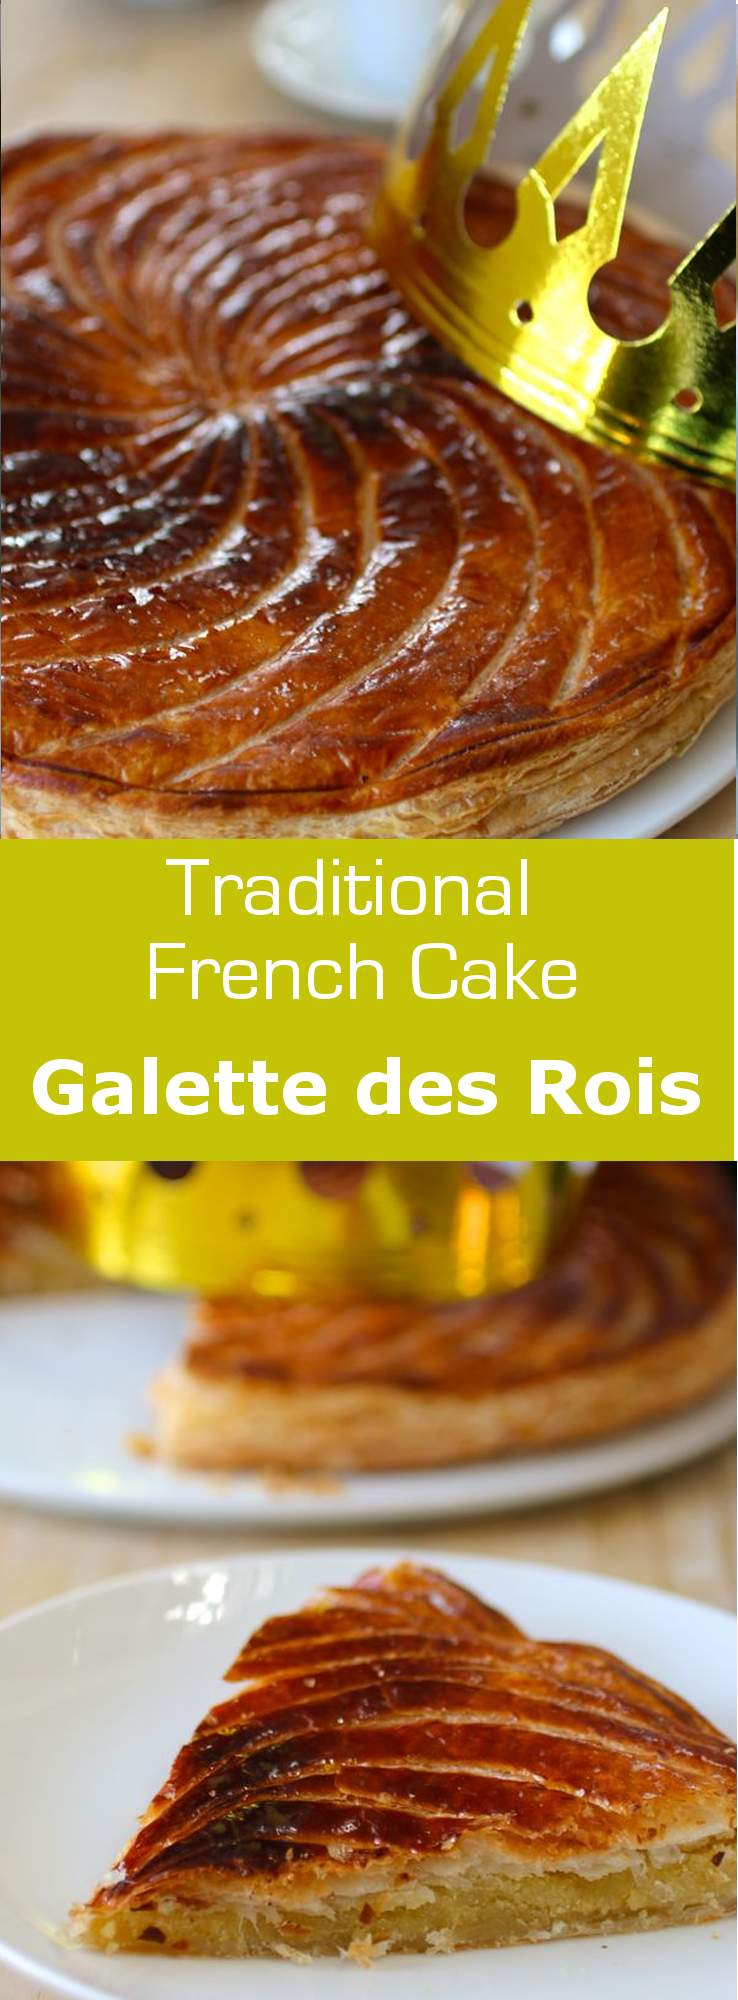 Pithivier is a traditional galette des rois (King Cake) from the Centre region of France. This recipe uses almond paste instead of frangipane. #vegetarian #dessert #france #french